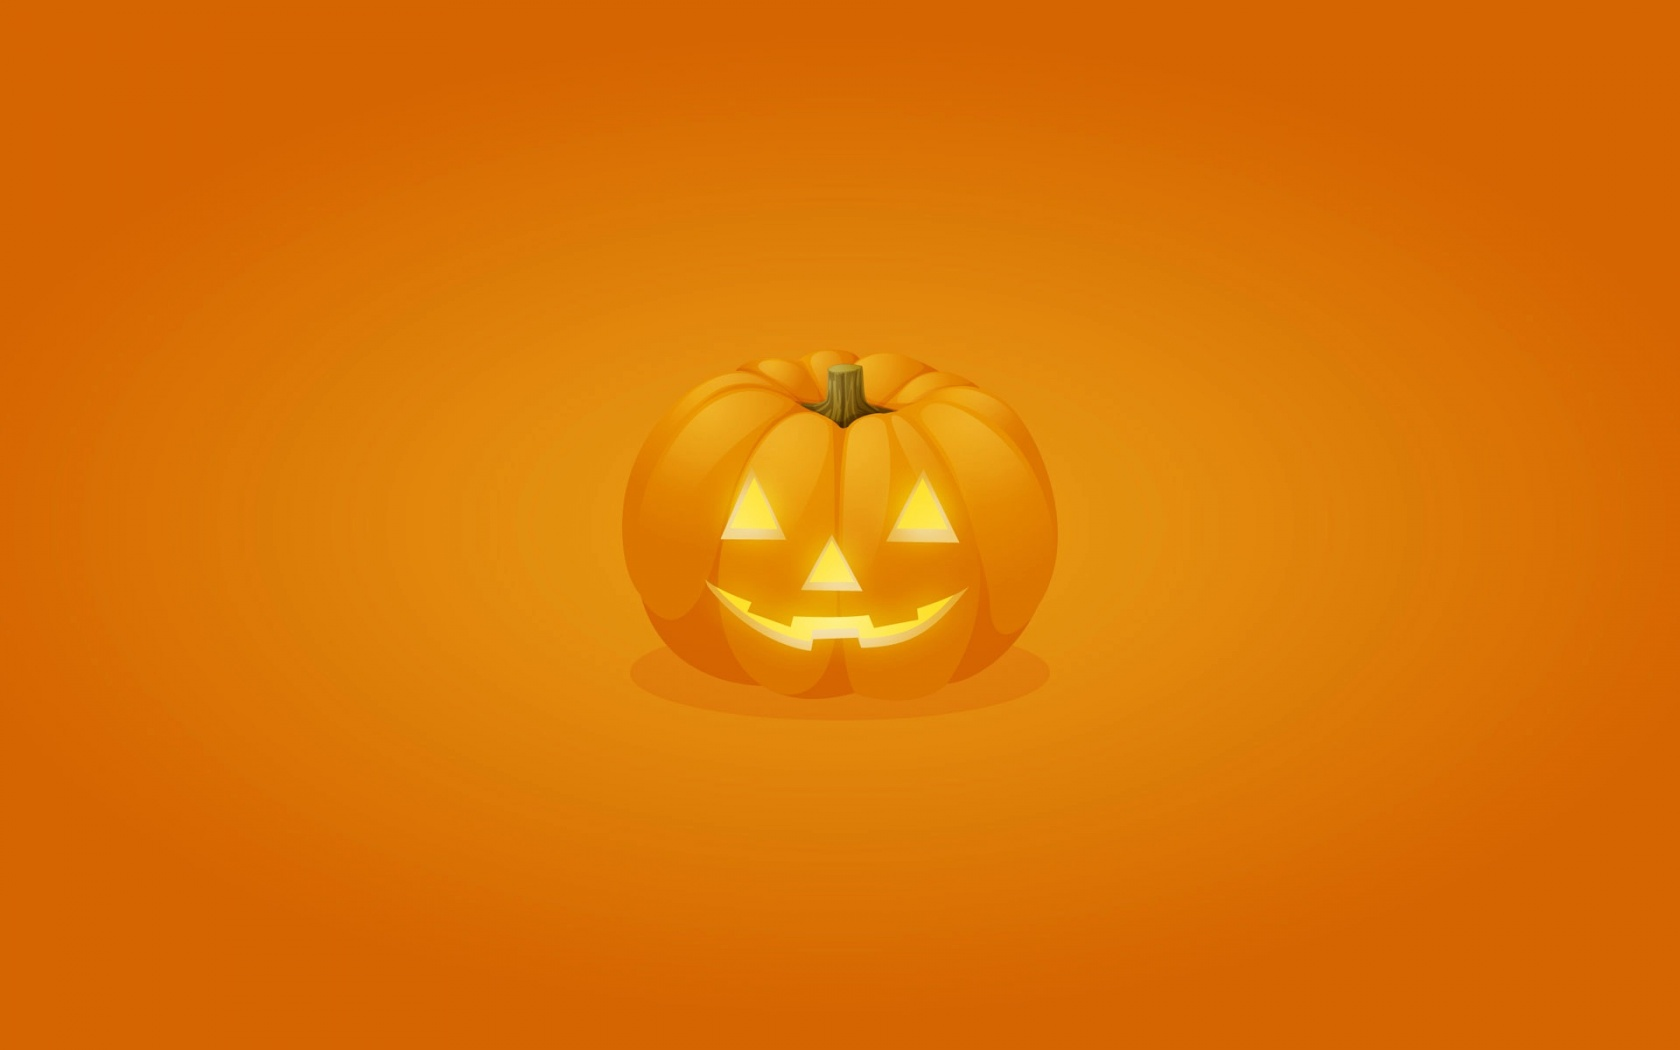 Halloween pumpkin wallpapers in jpg format for free download halloween pumpkin wallpapers toneelgroepblik Image collections